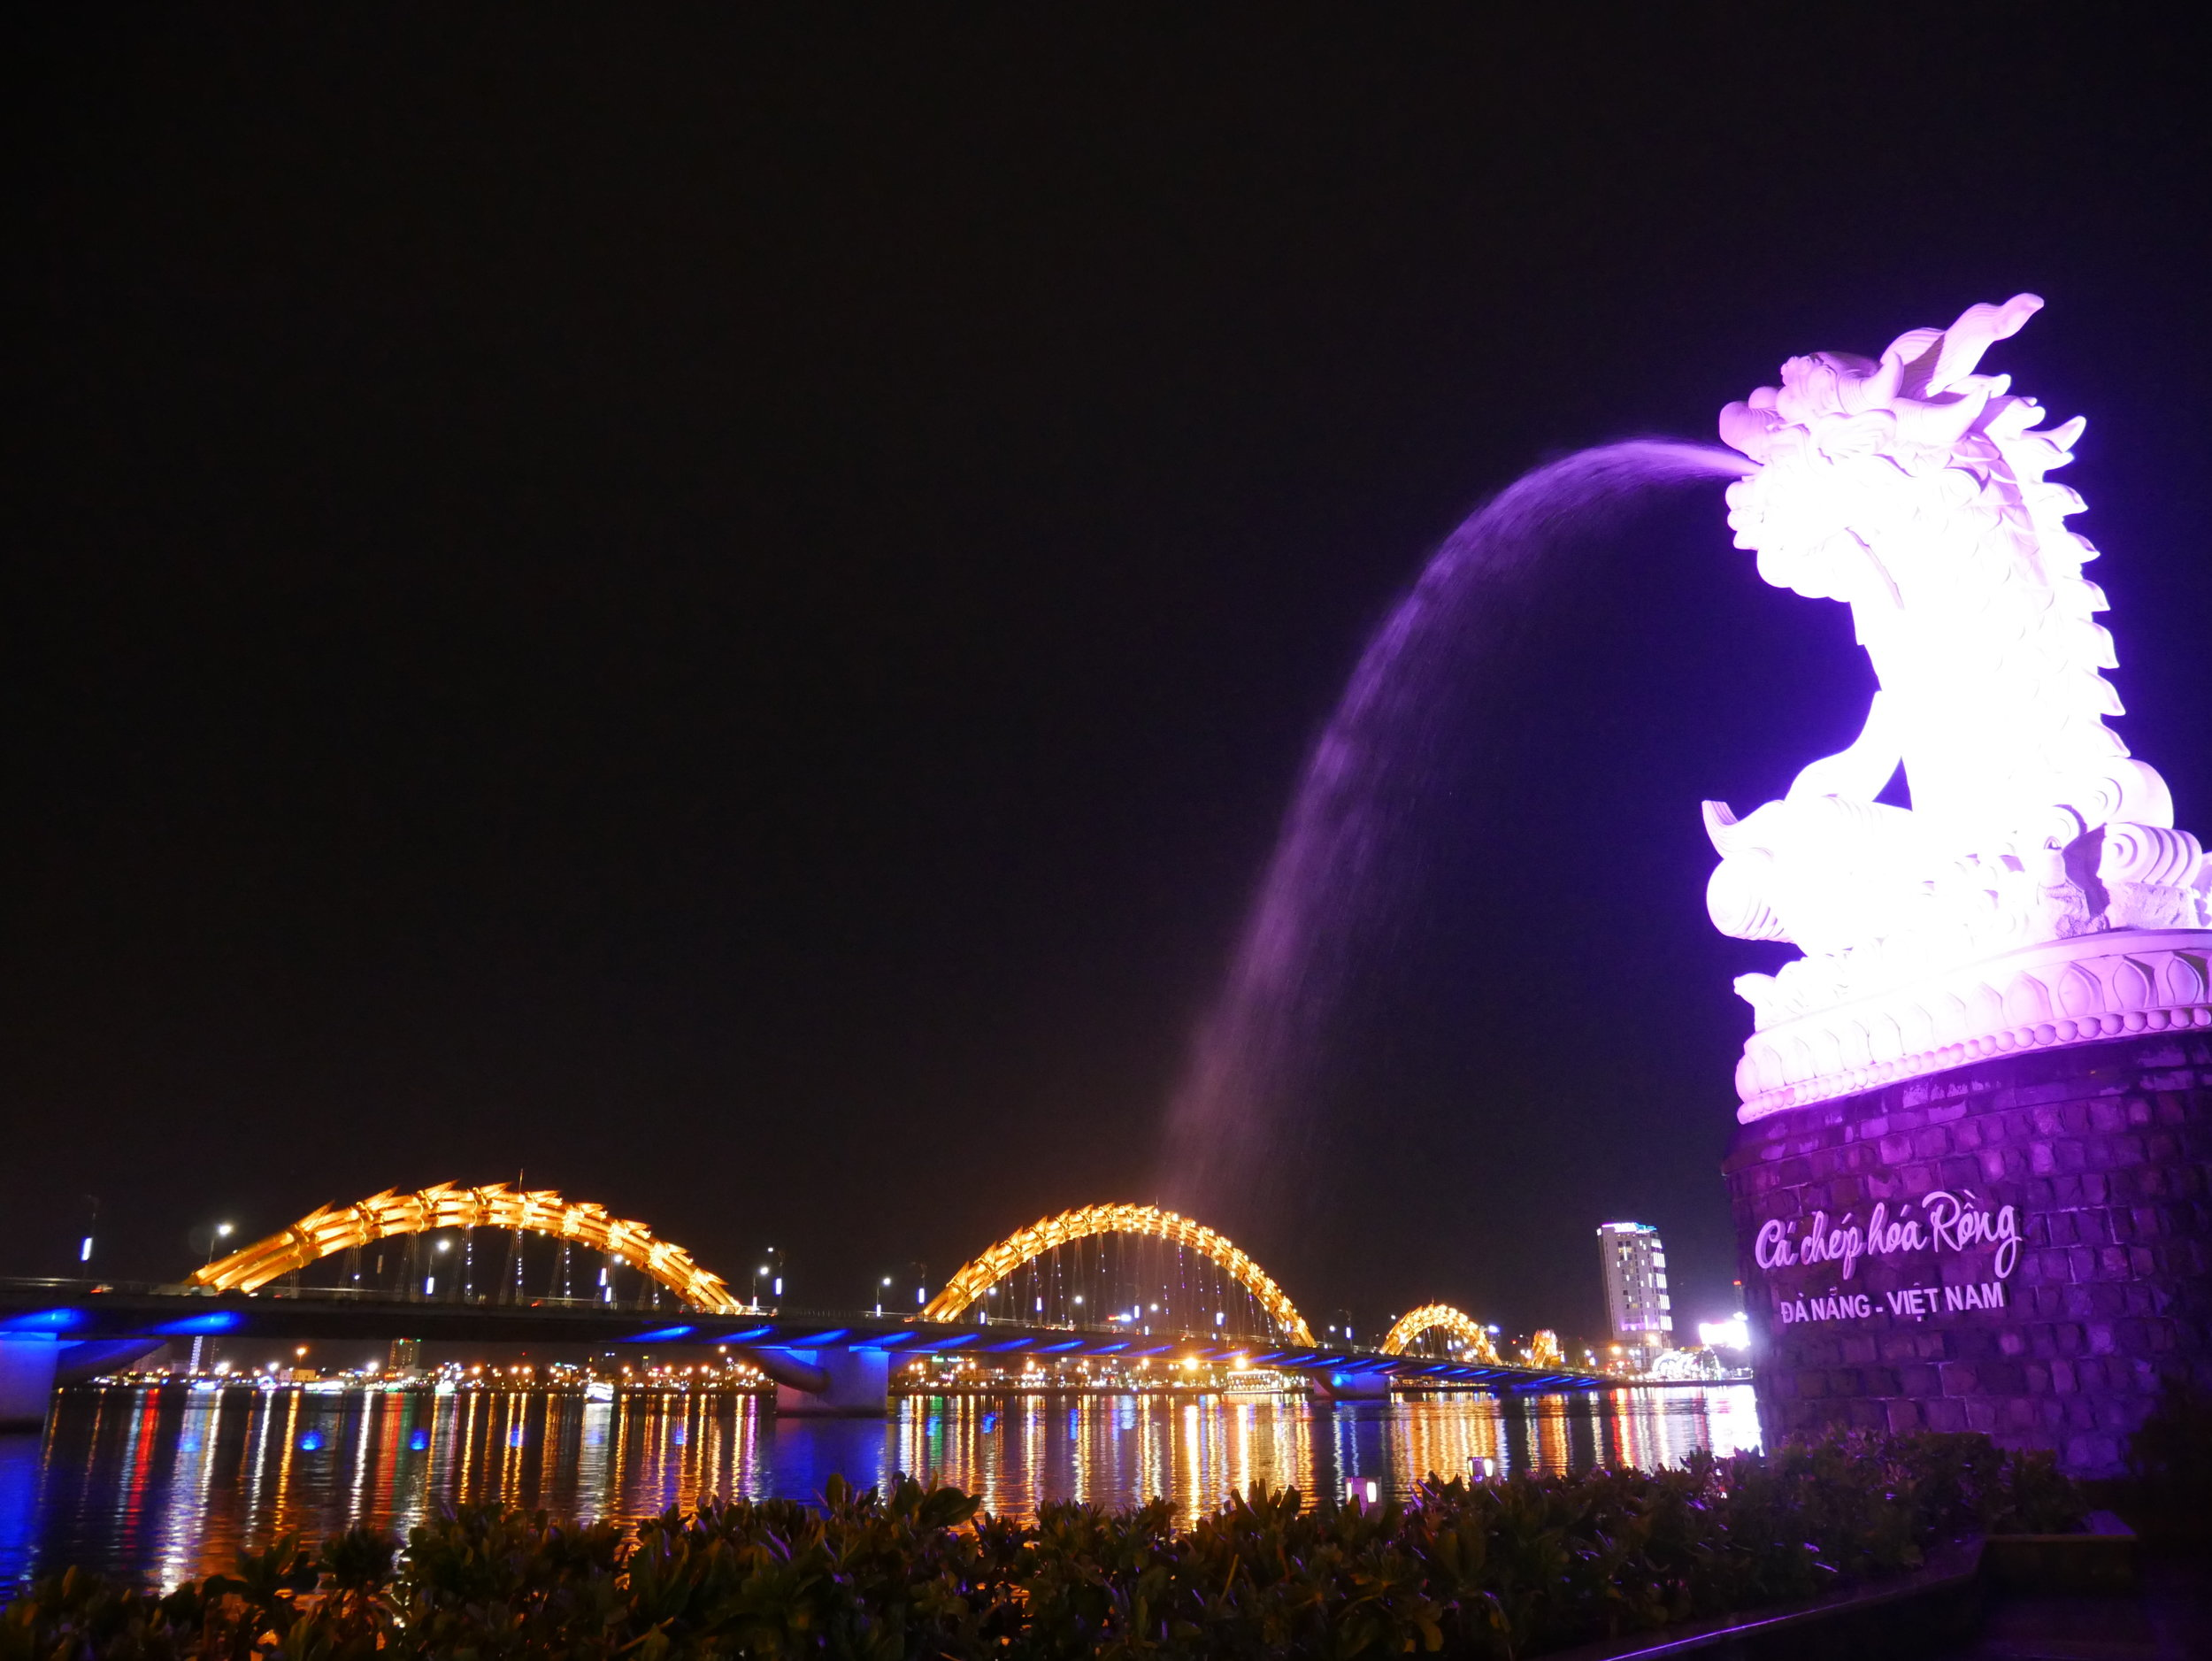 The Dragon Bridge and the Dragon Carp are lit up at night in Da Nang, Vietnam.